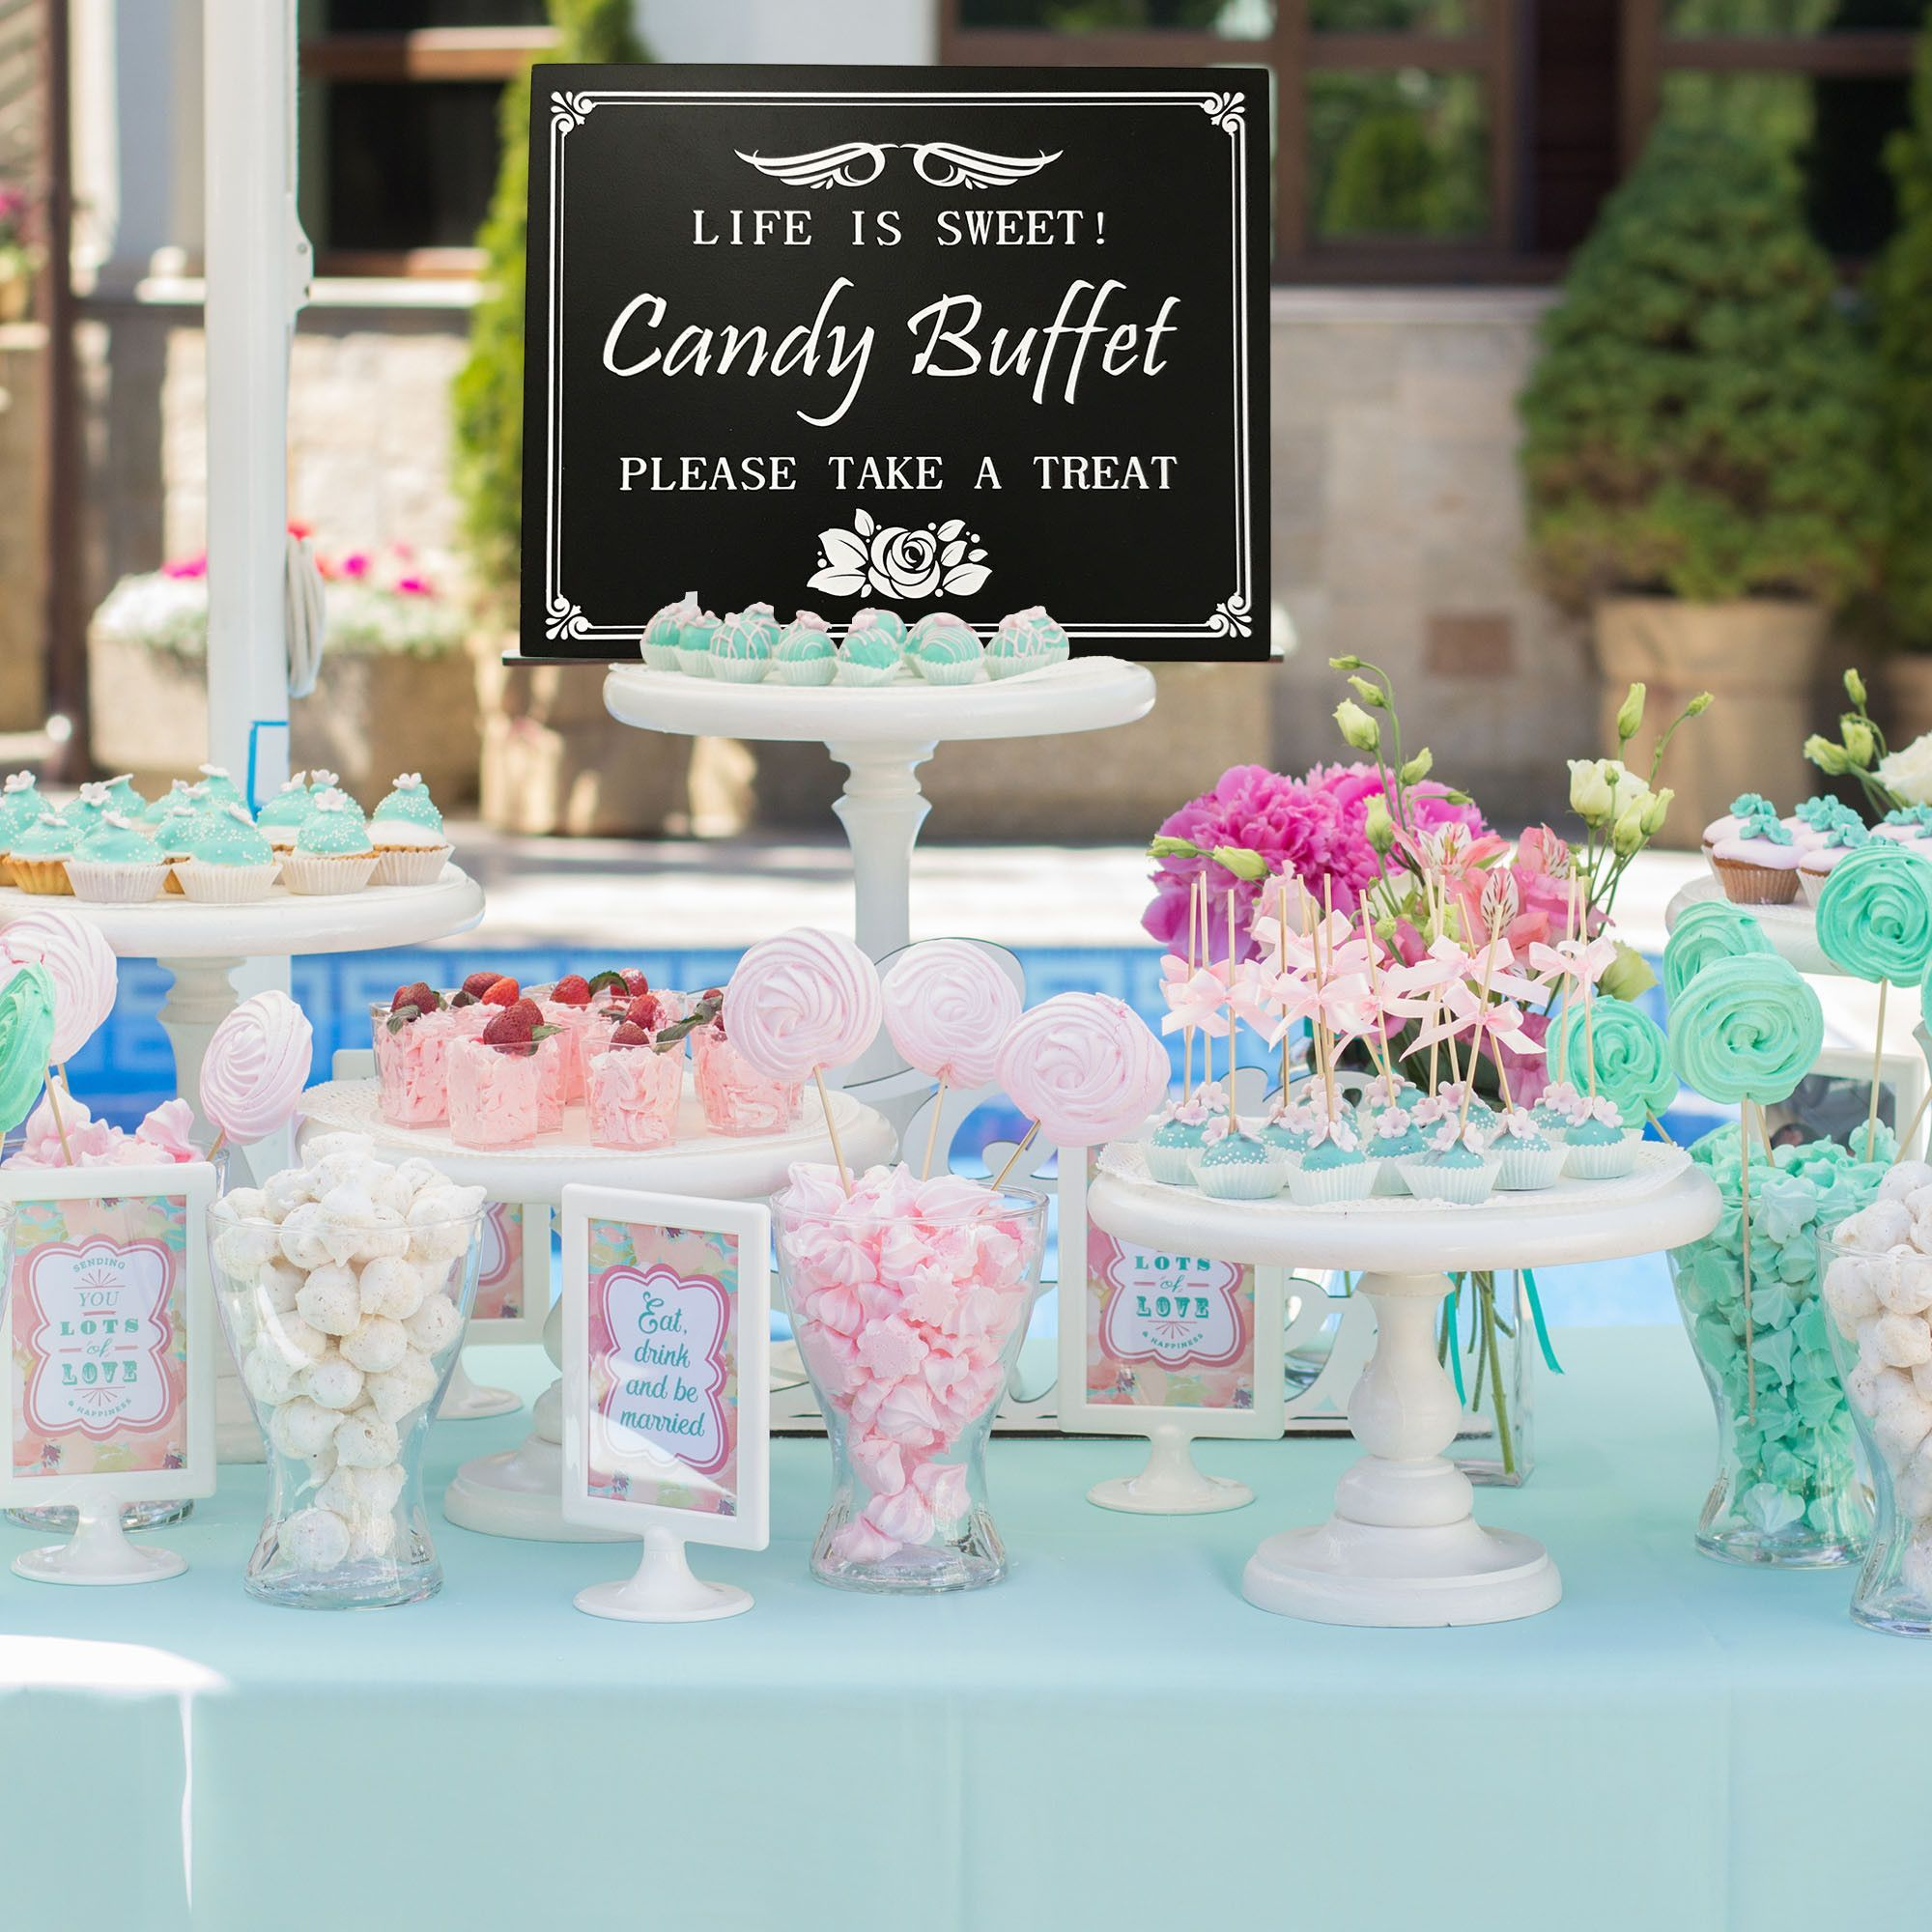 jennygems wood wedding party sign candy buffet life is sweet